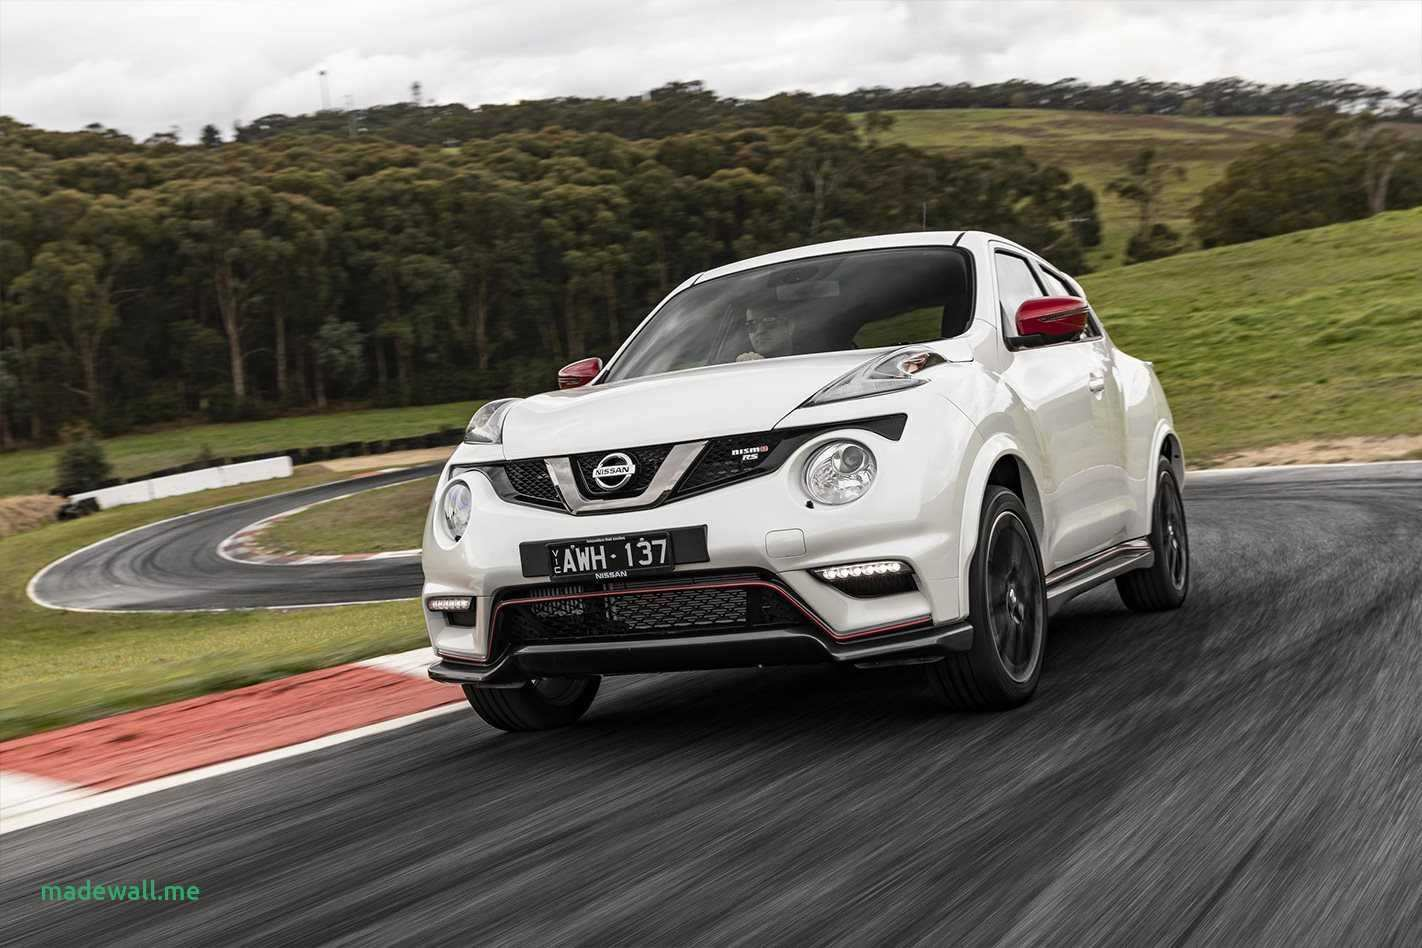 38 A Nissan Juke 2019 Release Date Prices